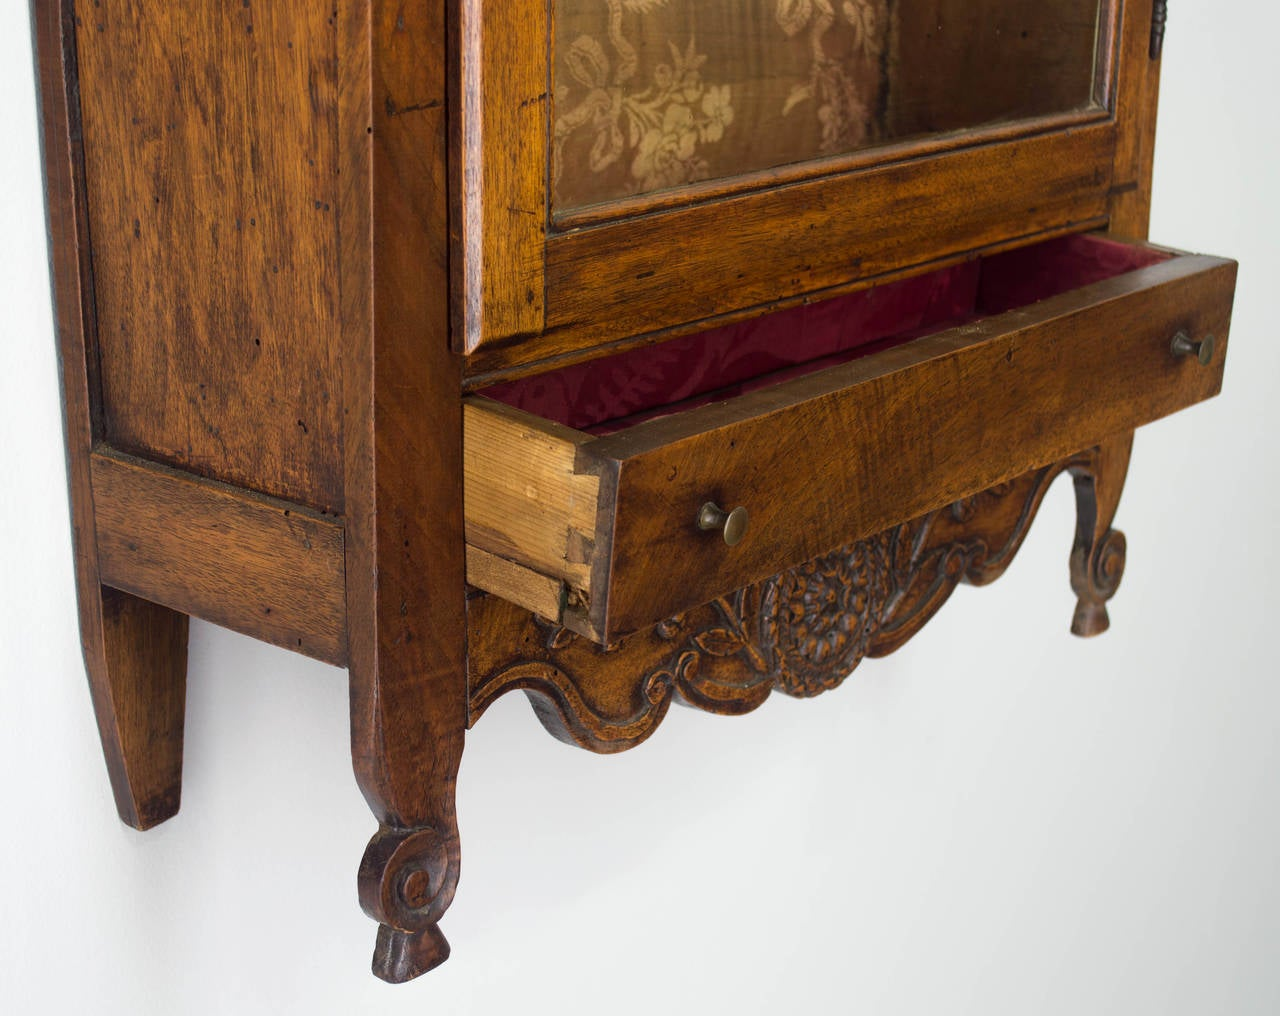 Walnut 18th Century French Louis XV Verrio or Display Cabinet For Sale